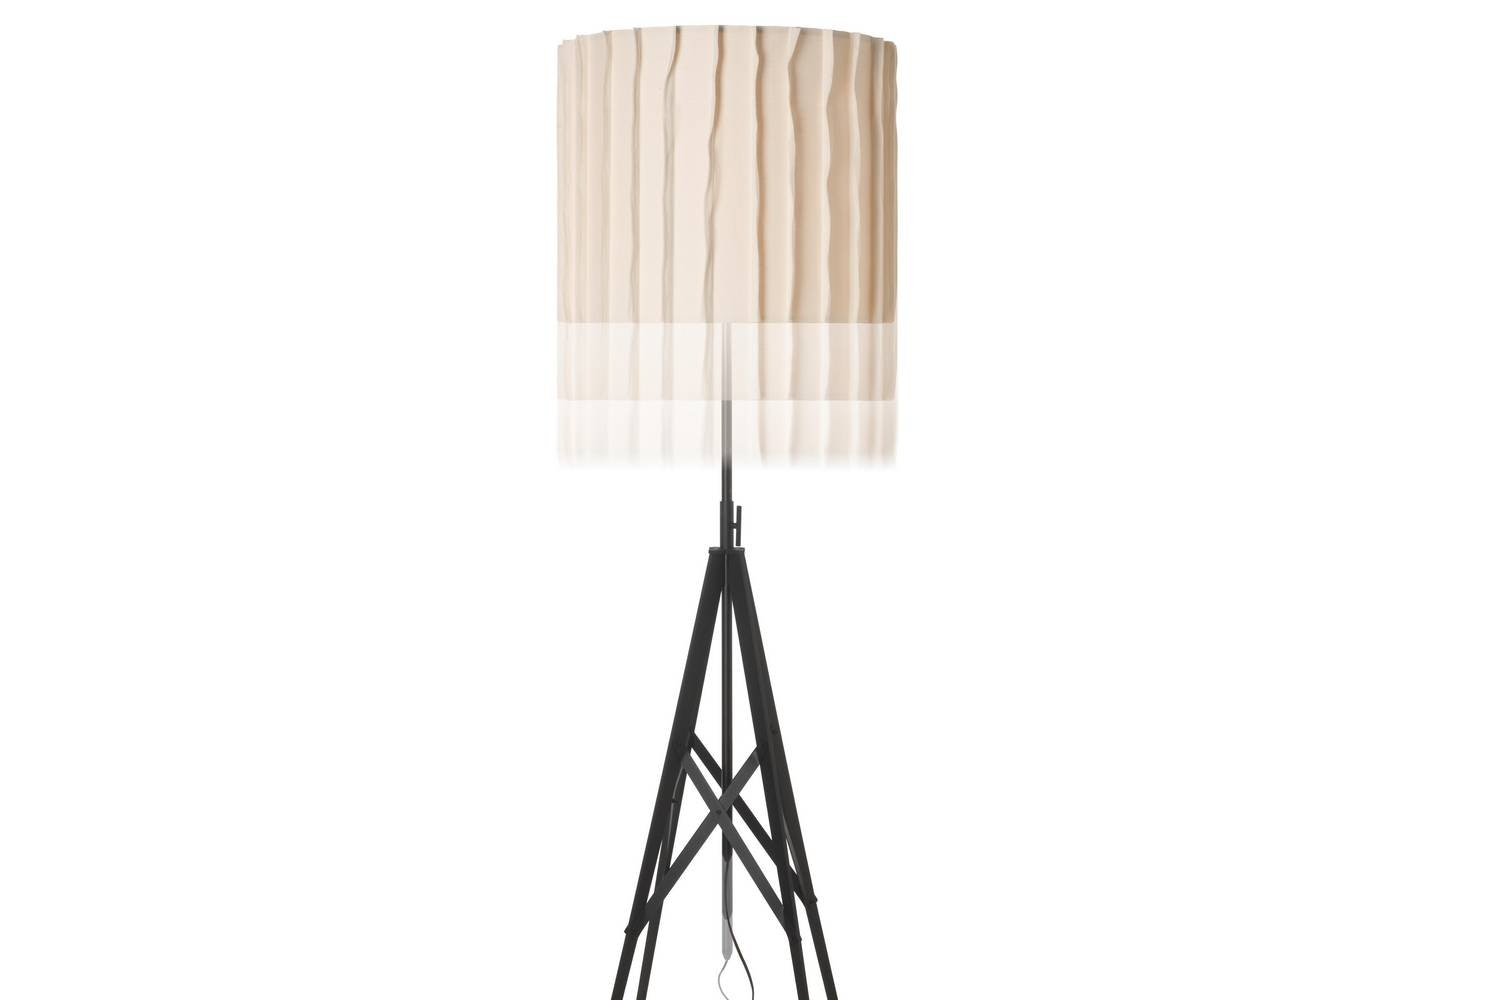 Pylon Floor Lamp by Successful Living from DIESEL for Foscarini